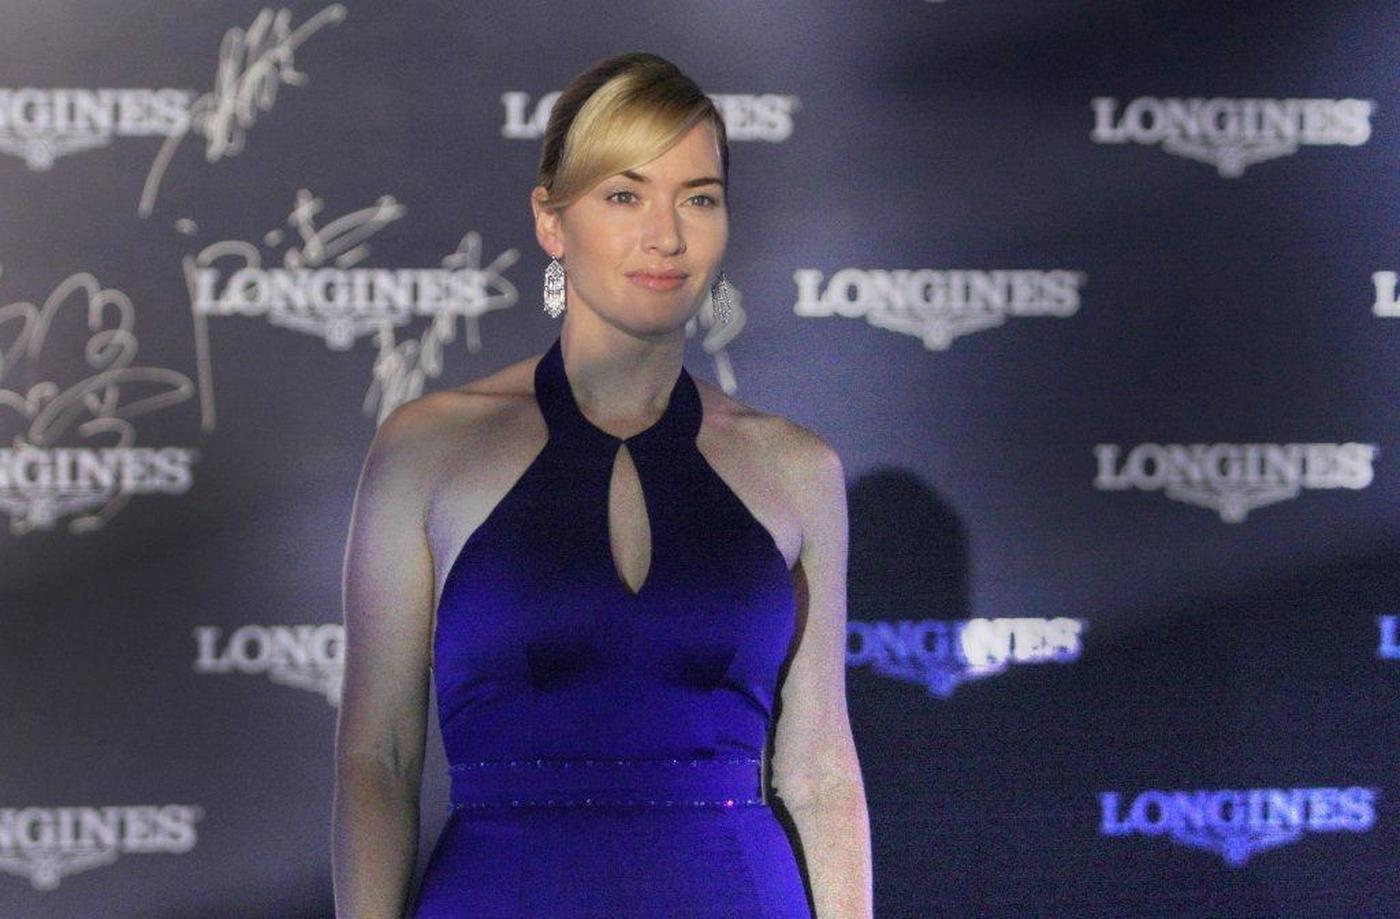 Longines Corporate Event: Kate Winslet reveals the new Longines Saint-Imier Collection in Shanghai 1